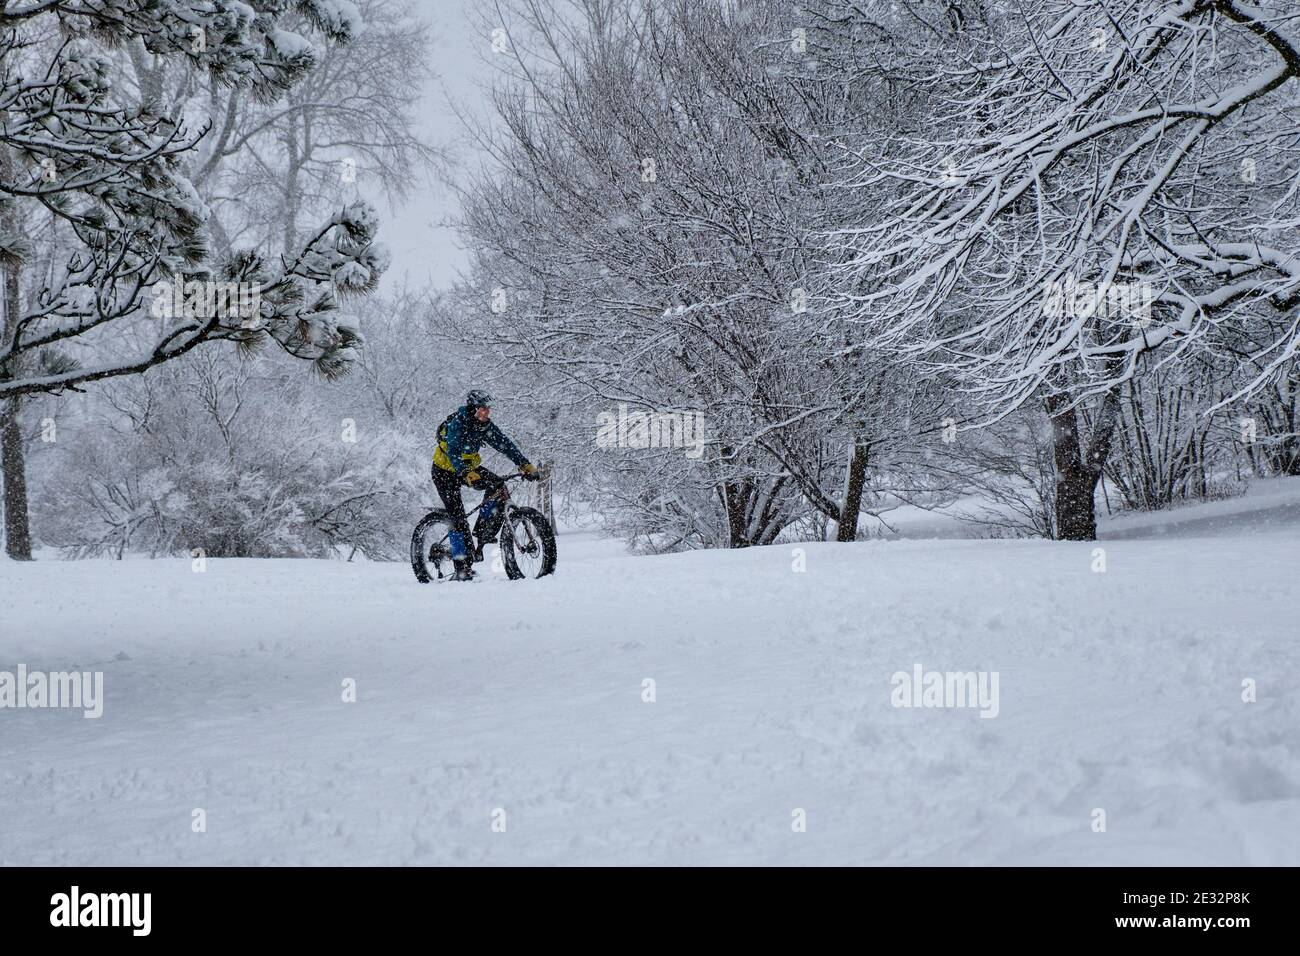 ottawa-canada-january-16th-2021-a-cyclist-enjoying-the-fresh-snow-in-the-arboretum-as-snows-continues-to-fall-while-the-city-still-struggles-with-the-covid-19-situation-the-ontario-pandemic-state-of-emergency-declared-on-thursday-allows-people-to-go-out-for-exercise-purposes-with-people-from-own-households-and-limits-gathering-to-five-people-the-first-snowstorm-of-2021-has-so-far-brought-over-15cm-of-snow-with-an-extra-10cm-expected-by-tomorrow-in-the-capital-credit-meanderingemualamy-live-news-2E32P8K.jpg